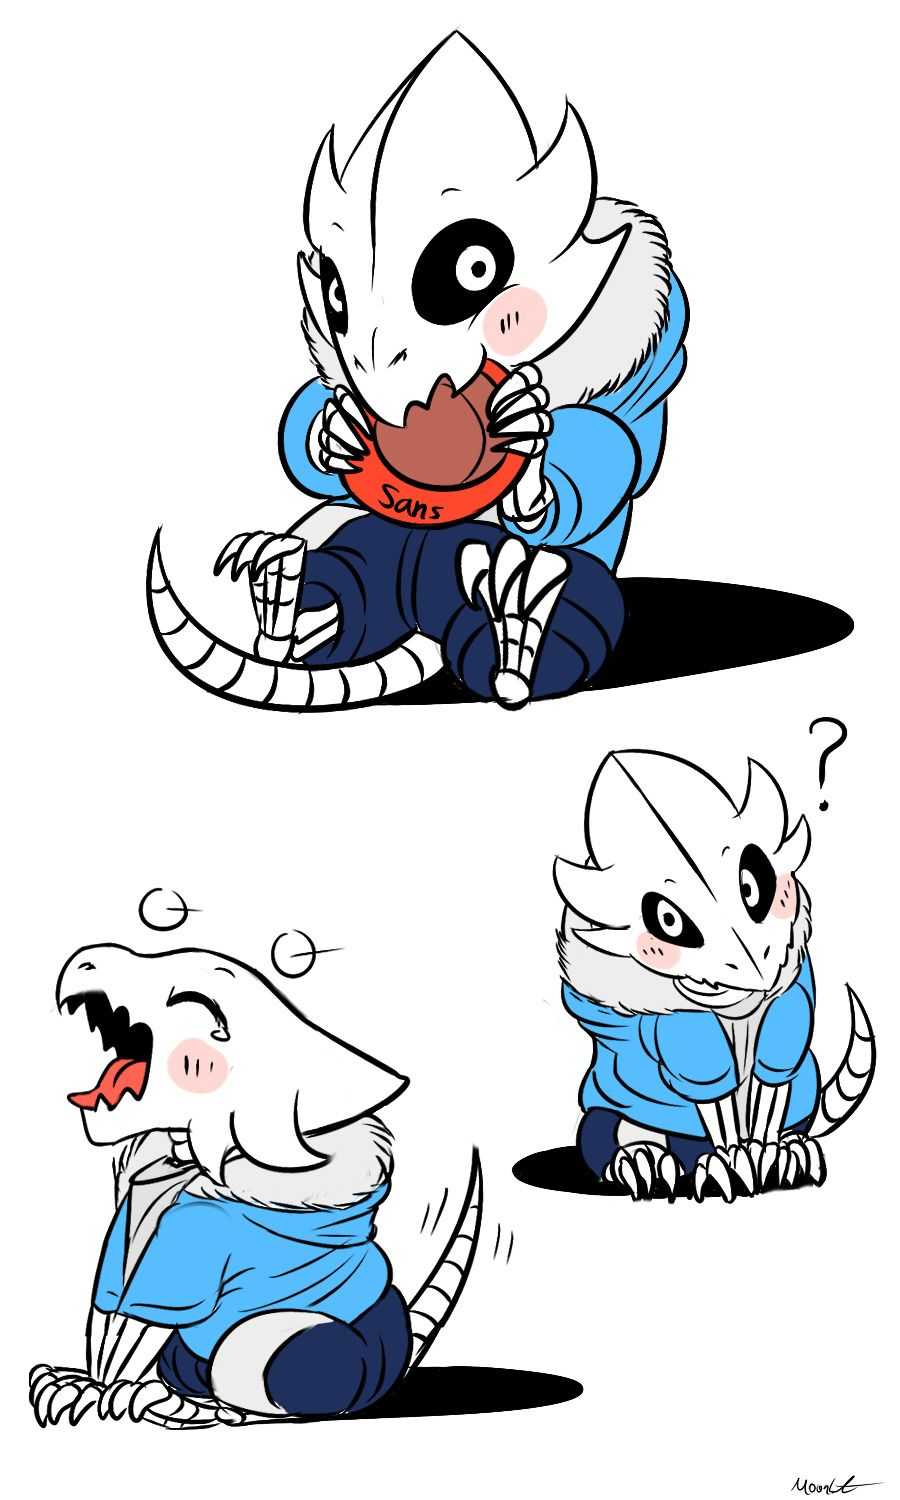 Post Anything From Anywhere Customize Everything And Find And Follow What You Love Create Your Own Tumb Undertale Pokemon Undertale Cute Undertale Fanart